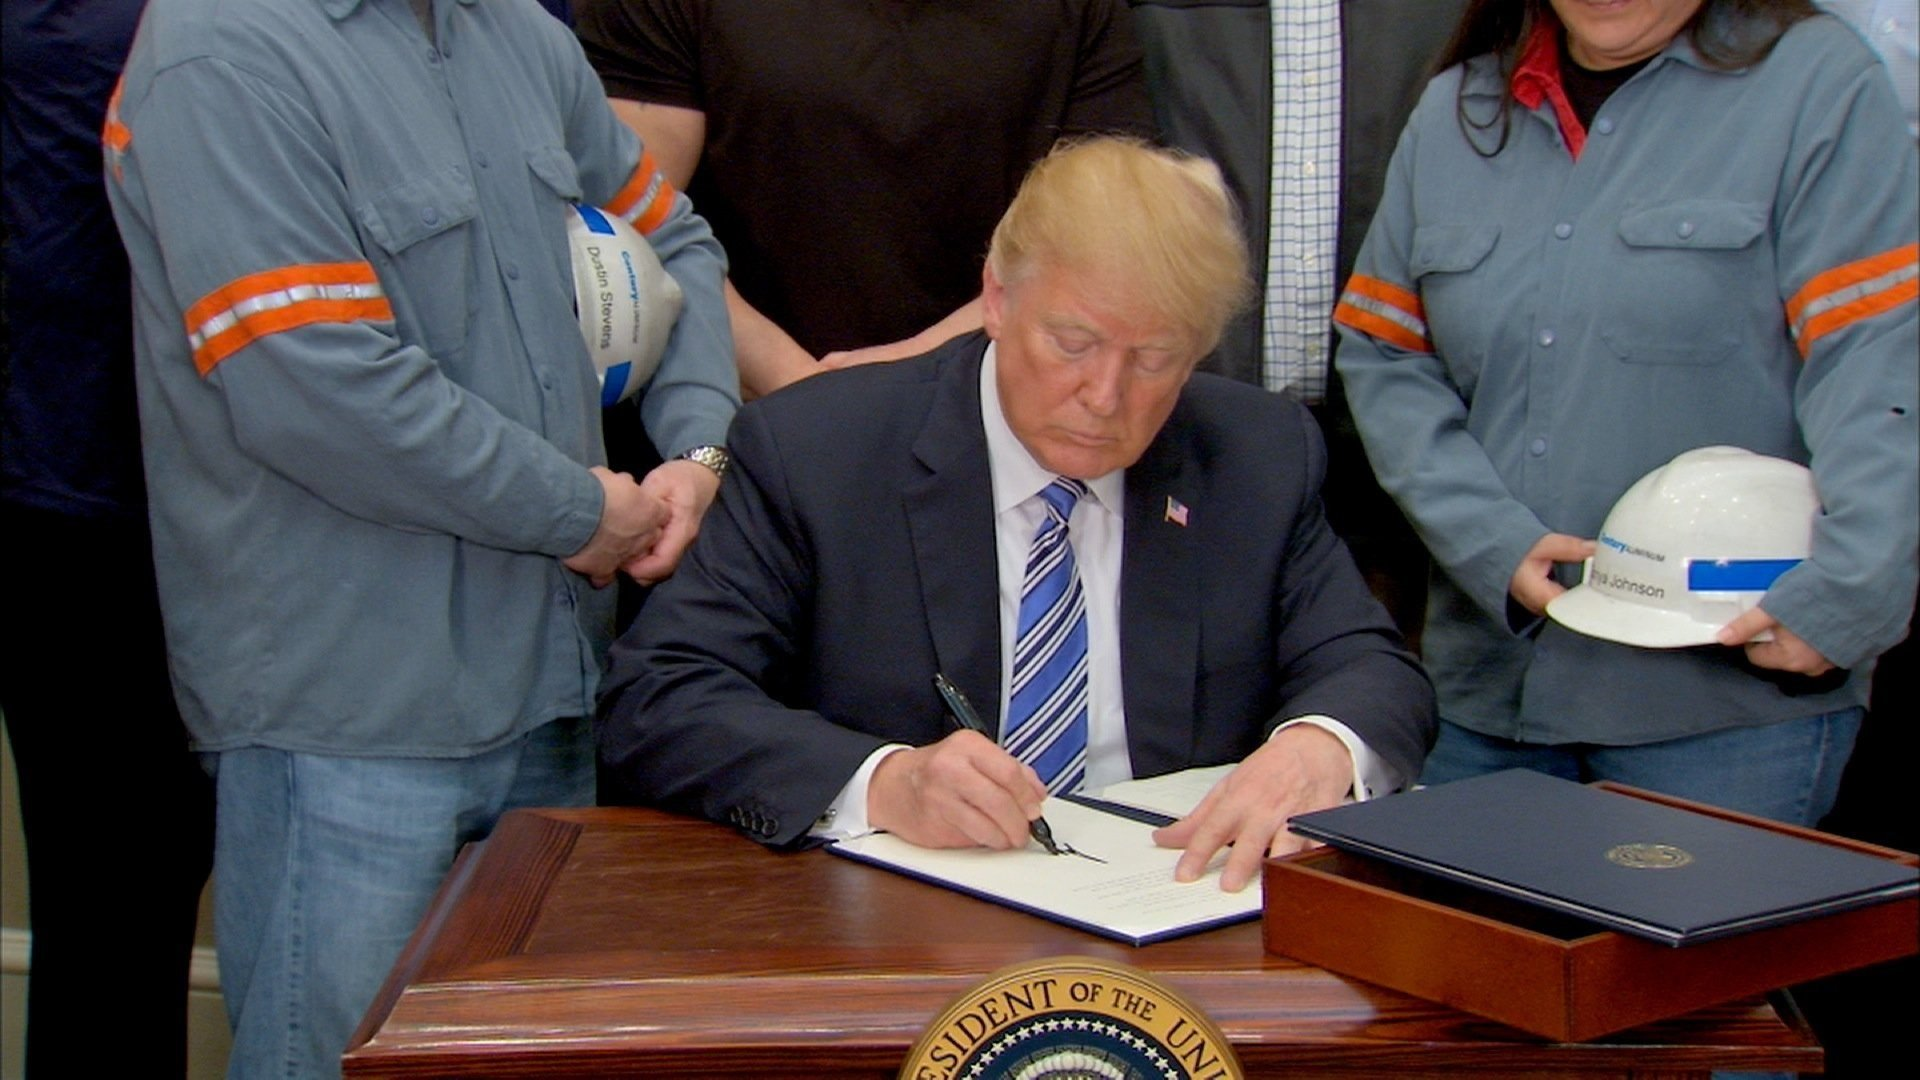 President Trump signed proclamations at the White House Thursday that establish new tariffs on steel and aluminum imports